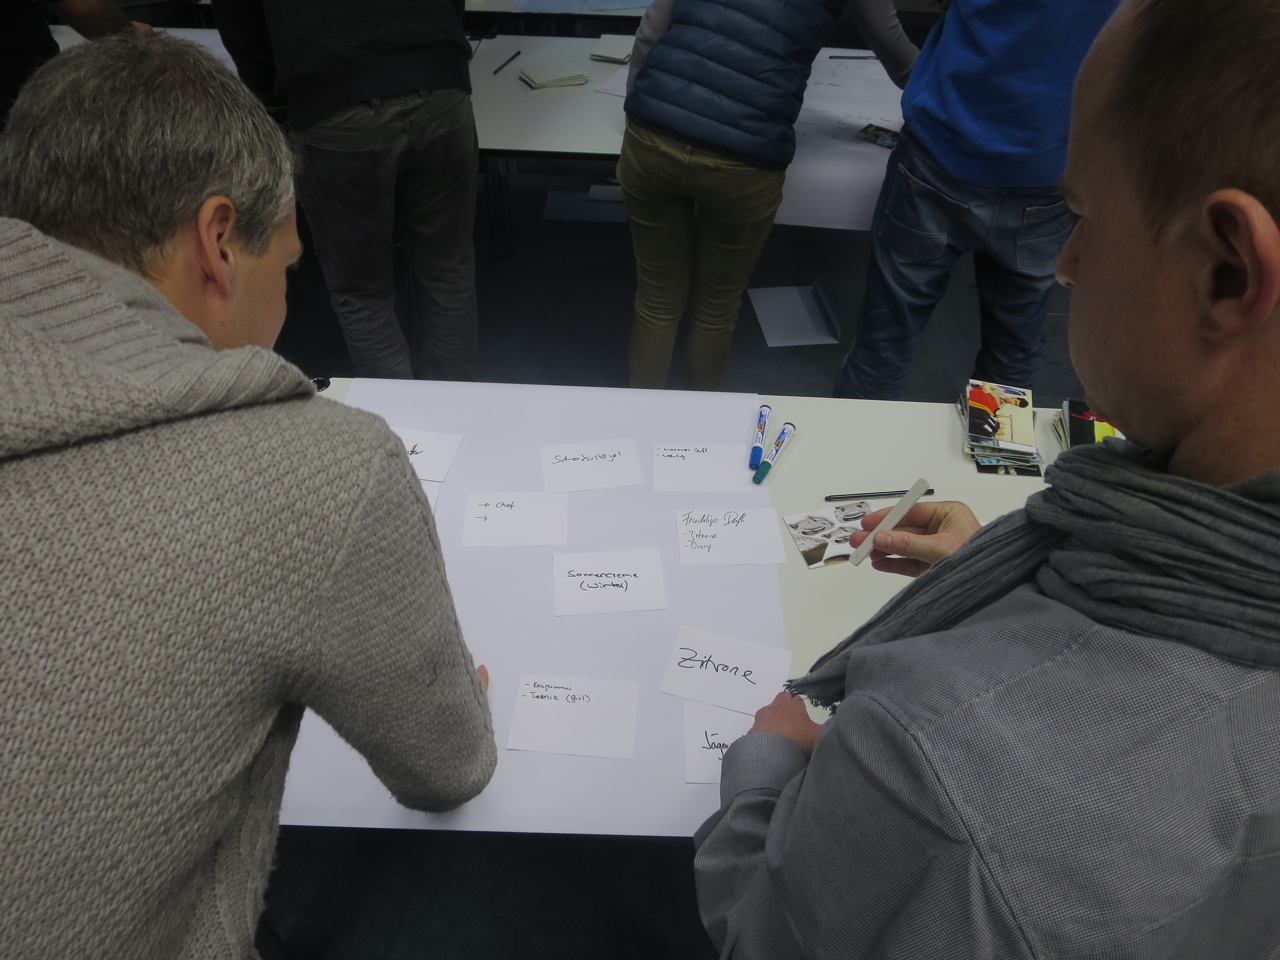 Translating scent in the context of project identity work